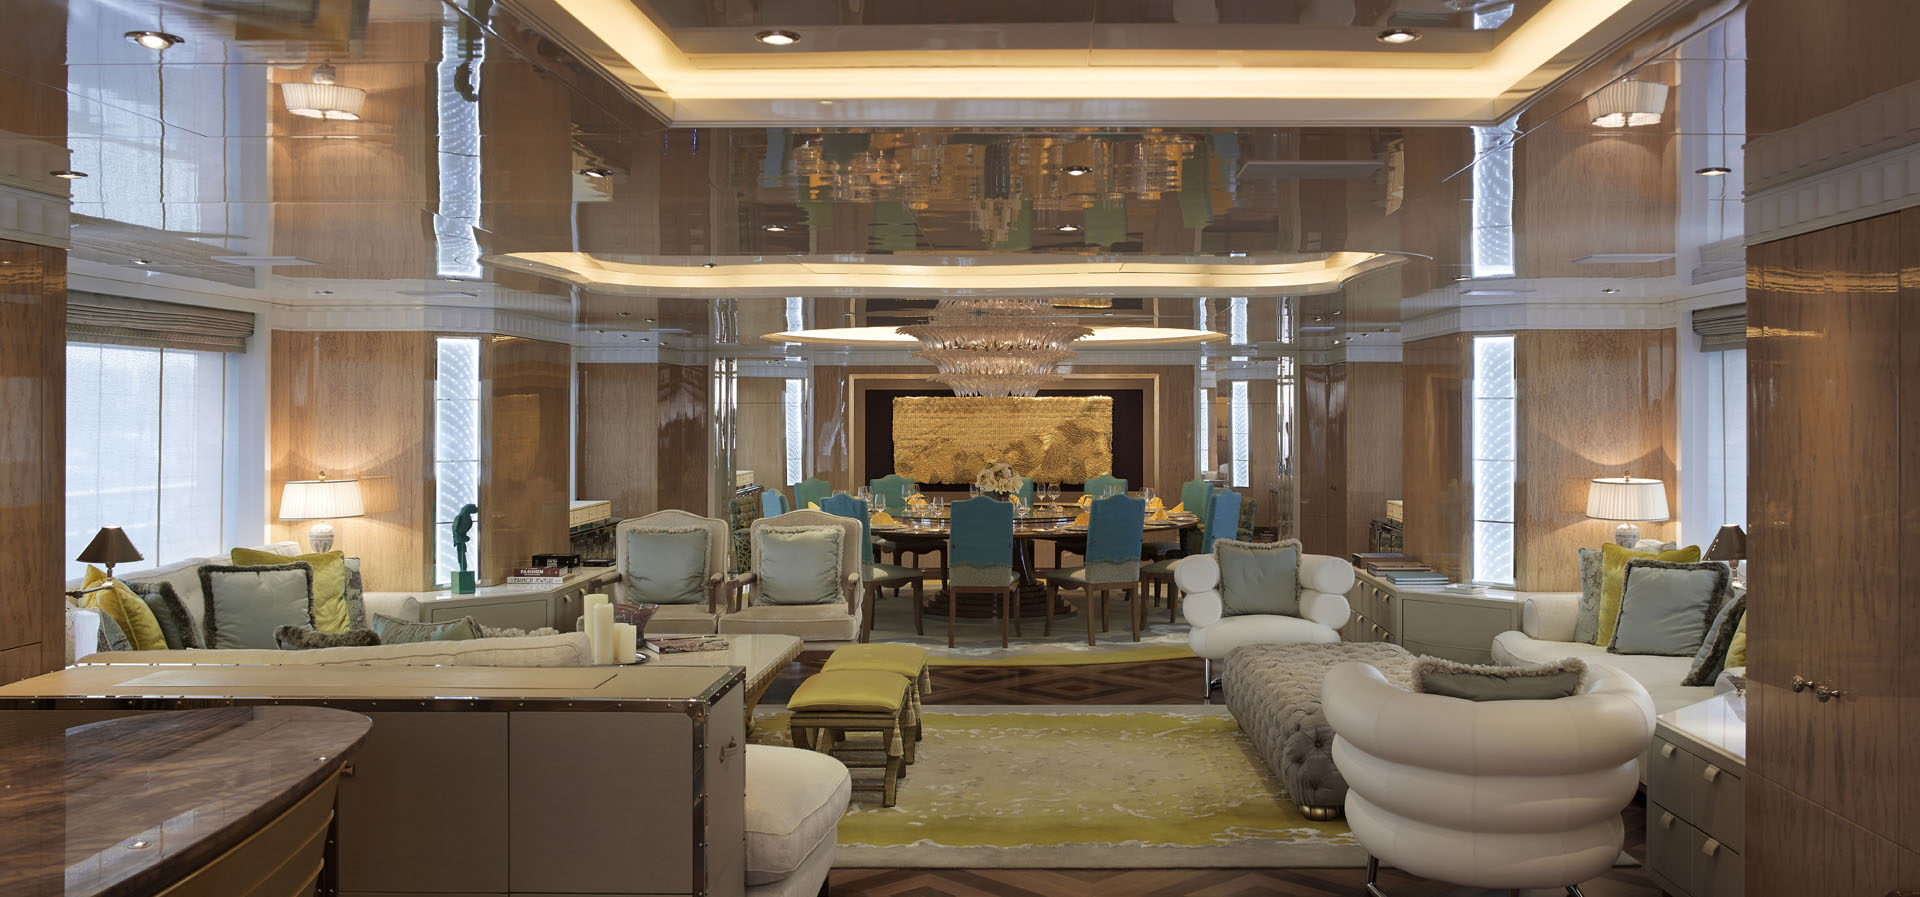 Top Interior Designers - Pamela Babey - BAMO - Lady Candy Yacht Lounge - Yacht designs - luxury interior design - yacht furniture - luxury furniture - luxury living top interior designers Top Interior Designers: Pamela Babey of BAMO BAMO LadyCandy MDLounge 19 copy